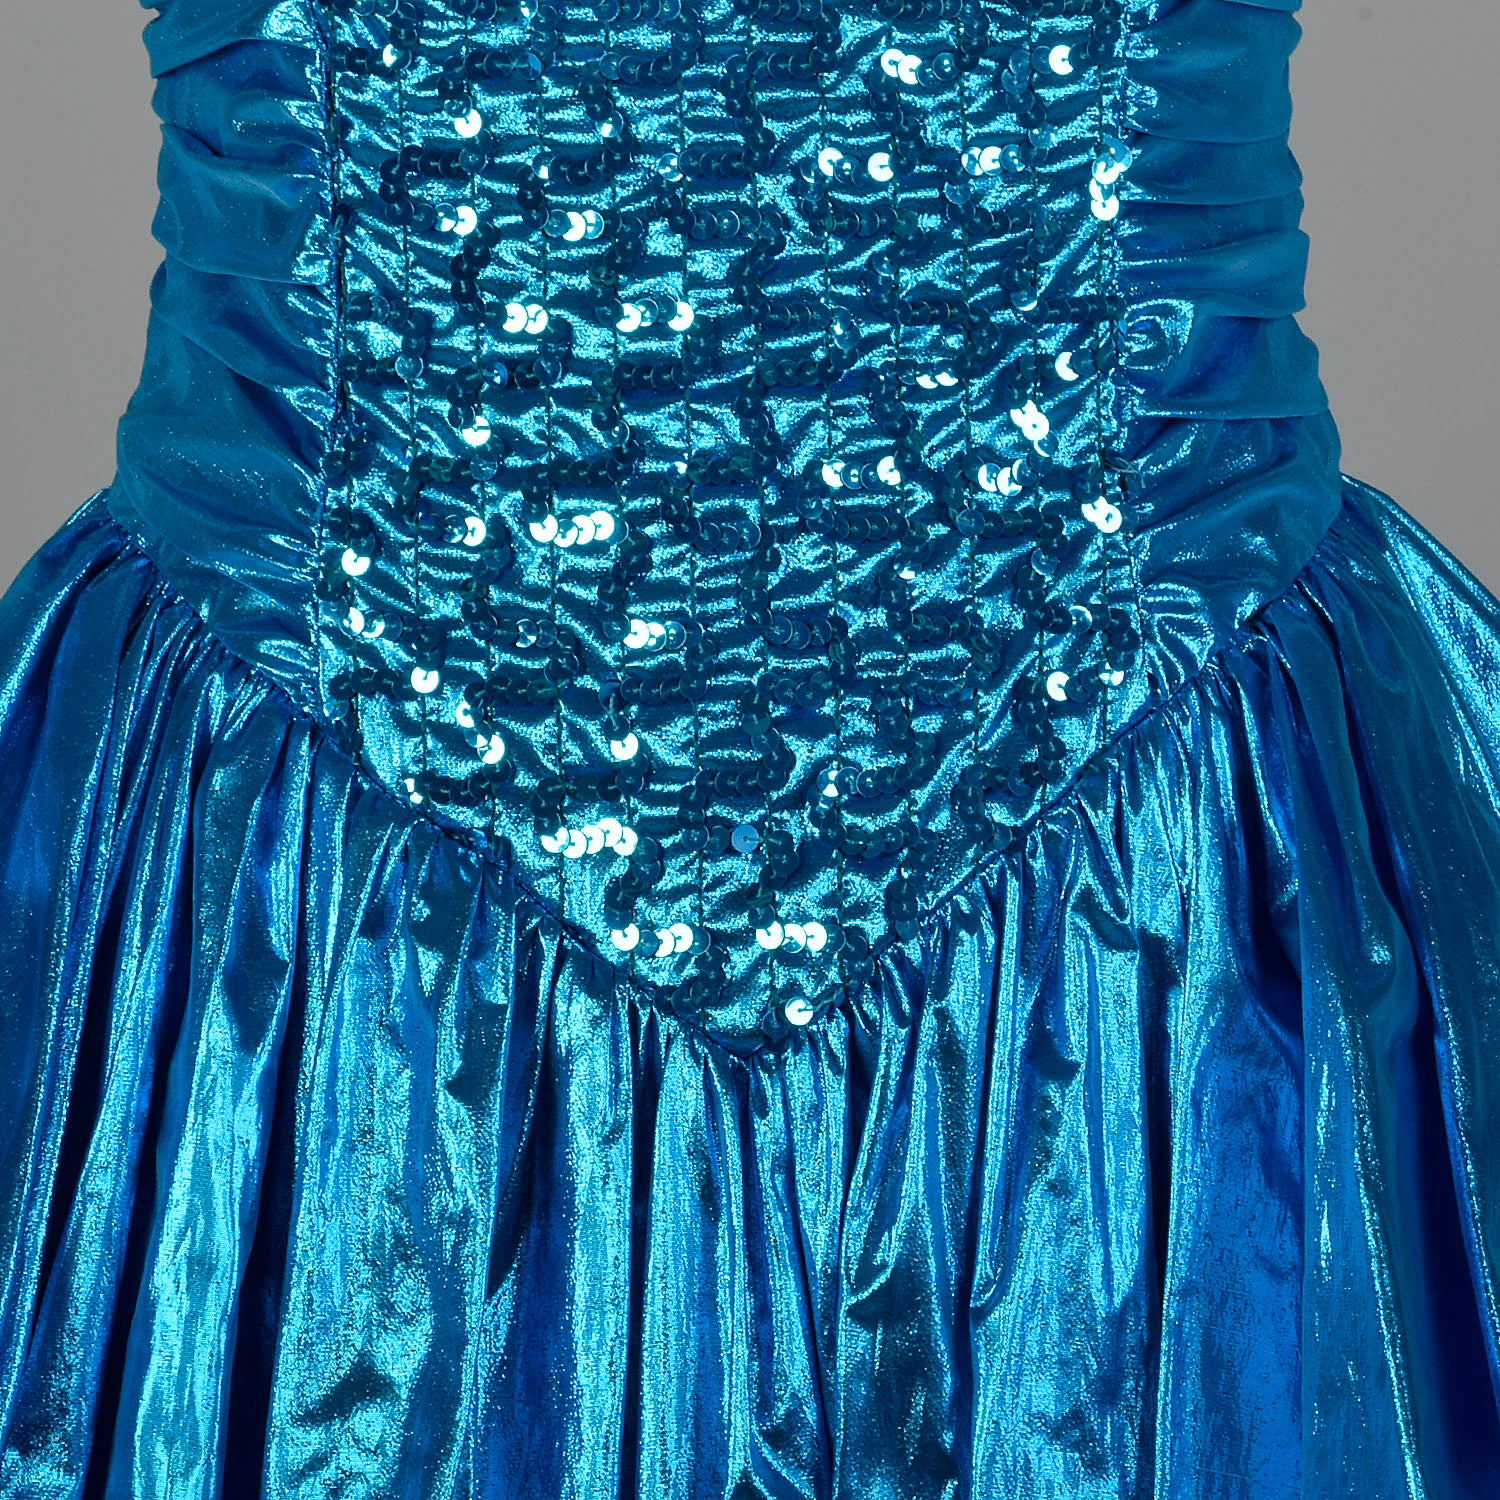 1980s Electric Blue Lame Prom Dress Full Length Formal Evening Gown Sequin Bodice